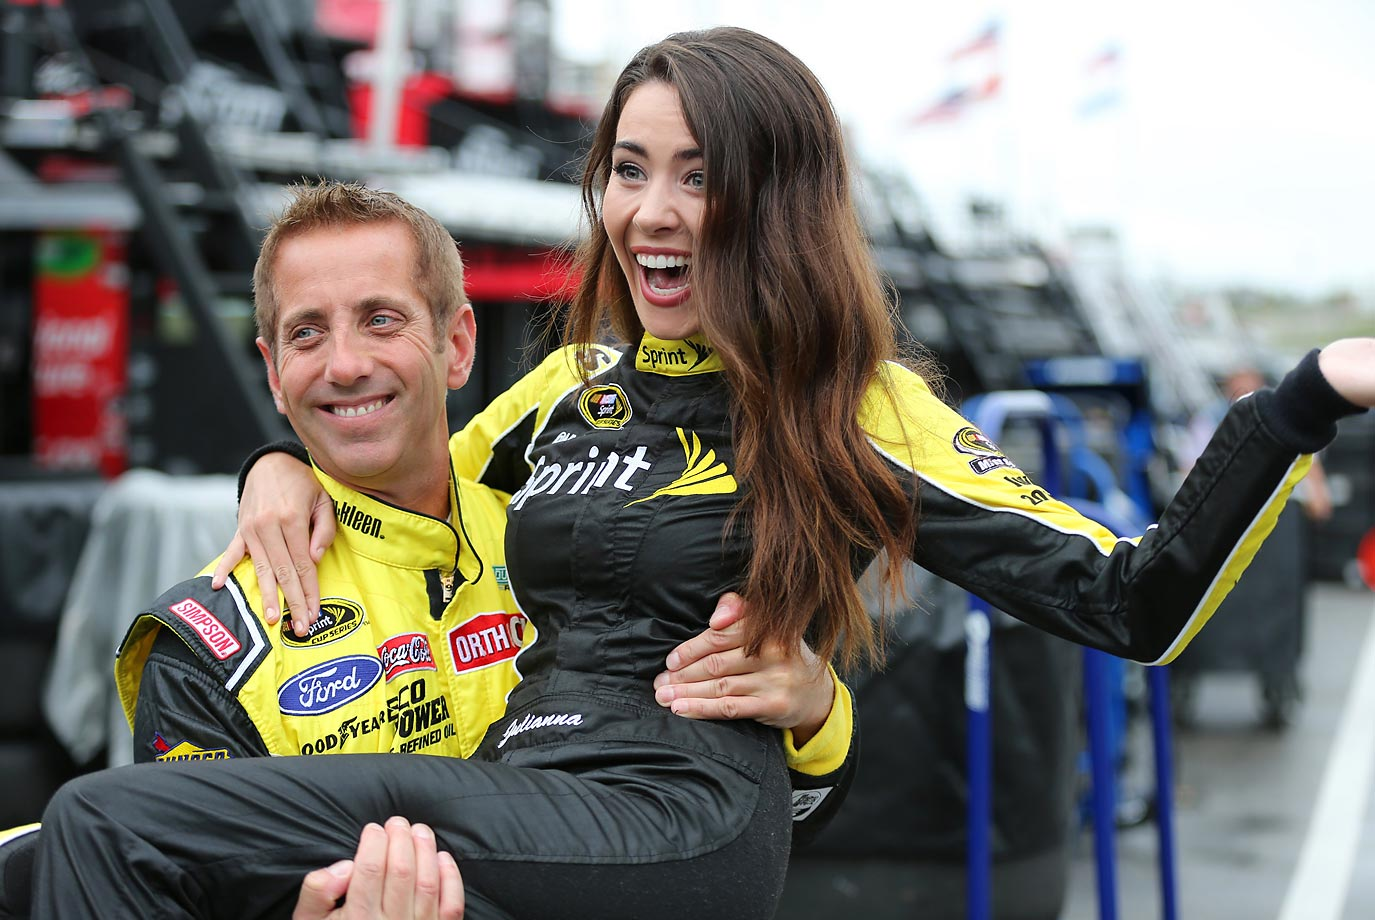 Greg Biffle picks up Sprint Cup girl Julianna during practice for the ENERGY 301.